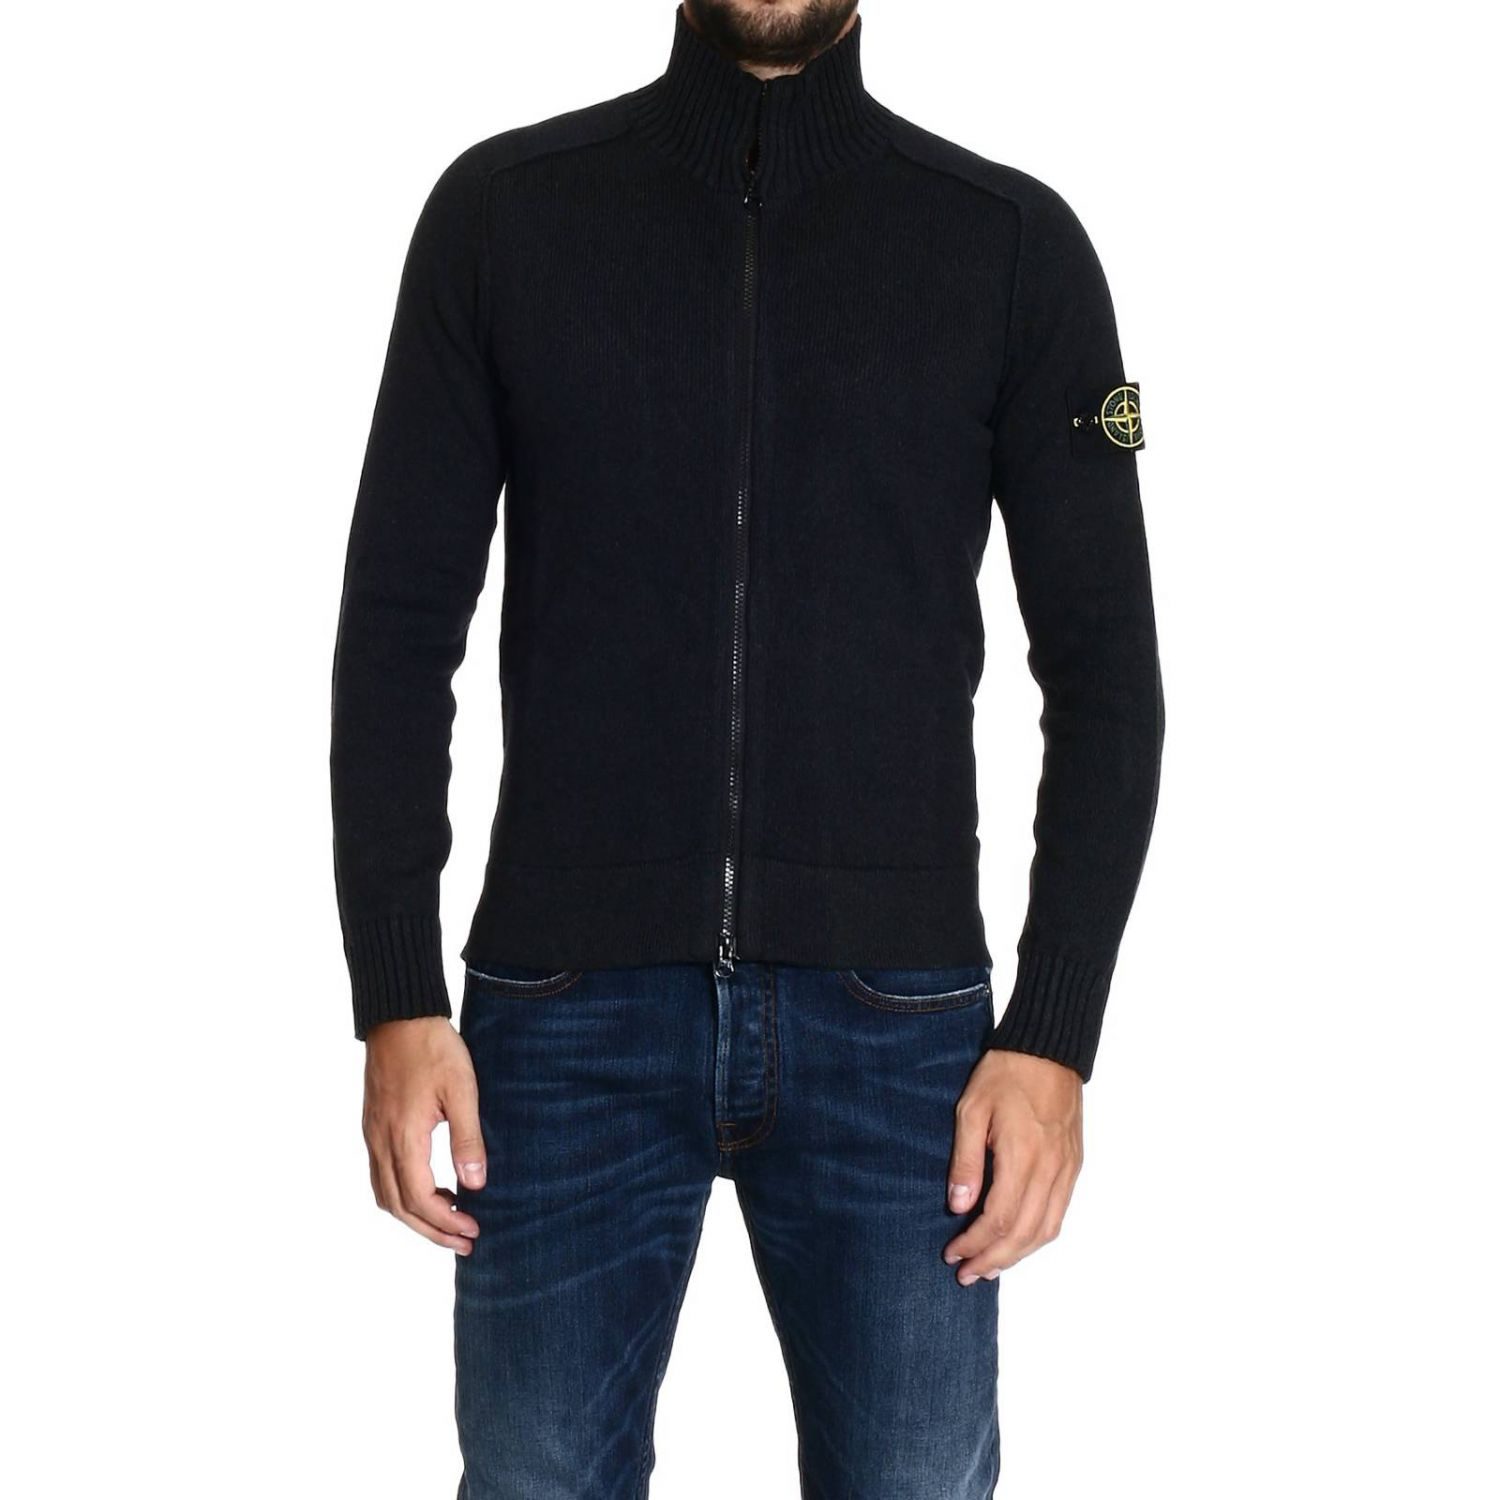 Stone island Sweater Heavy Cotton Full Zip in Black for Men - Lyst